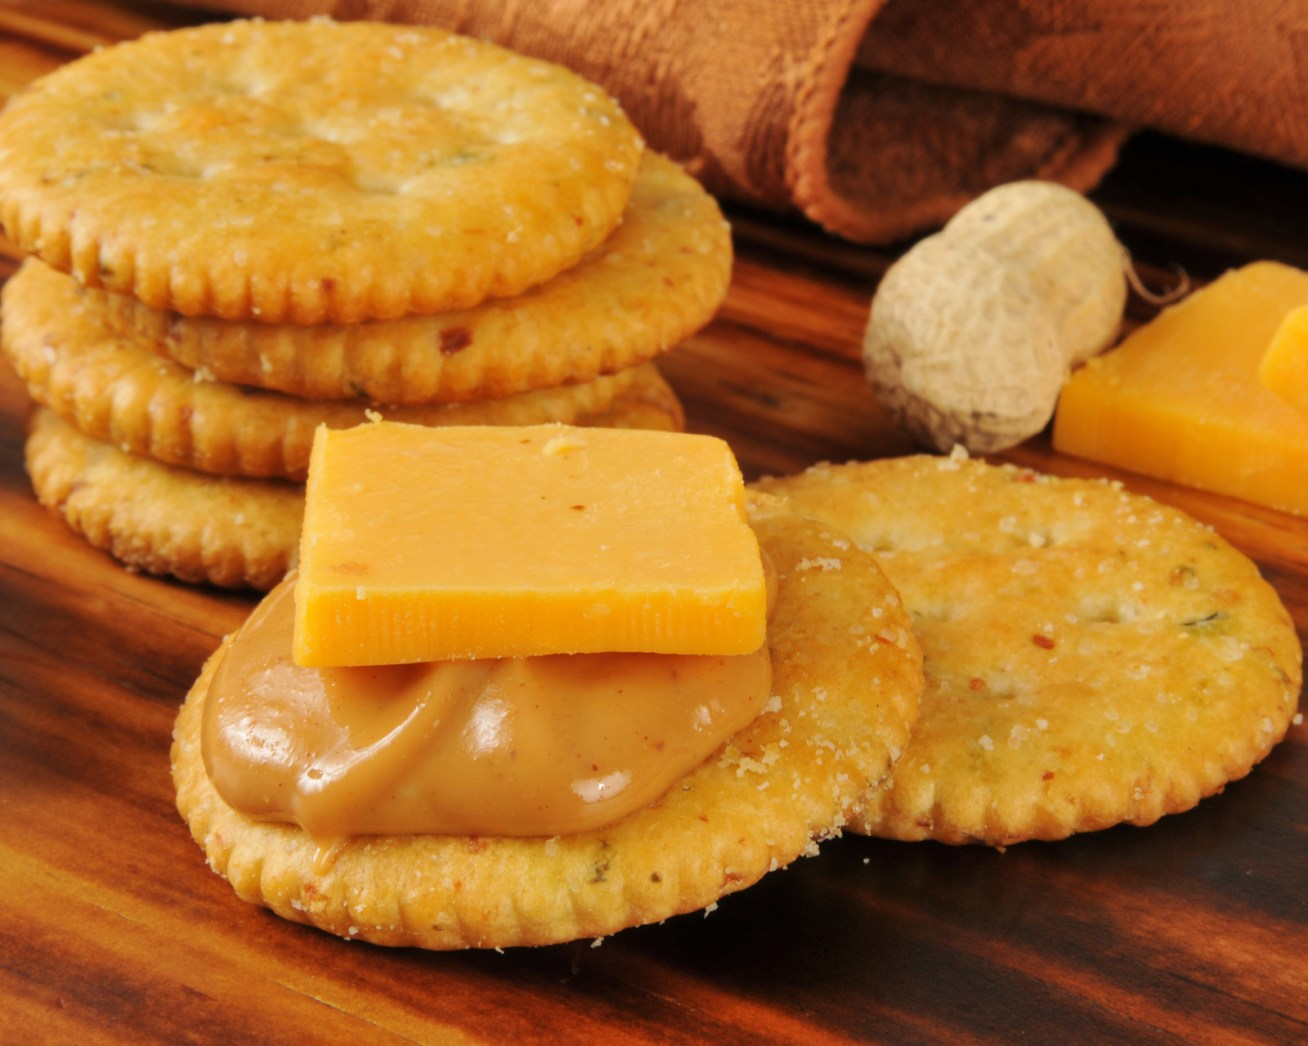 Or even just cheese dipped into the peanut butter jar.